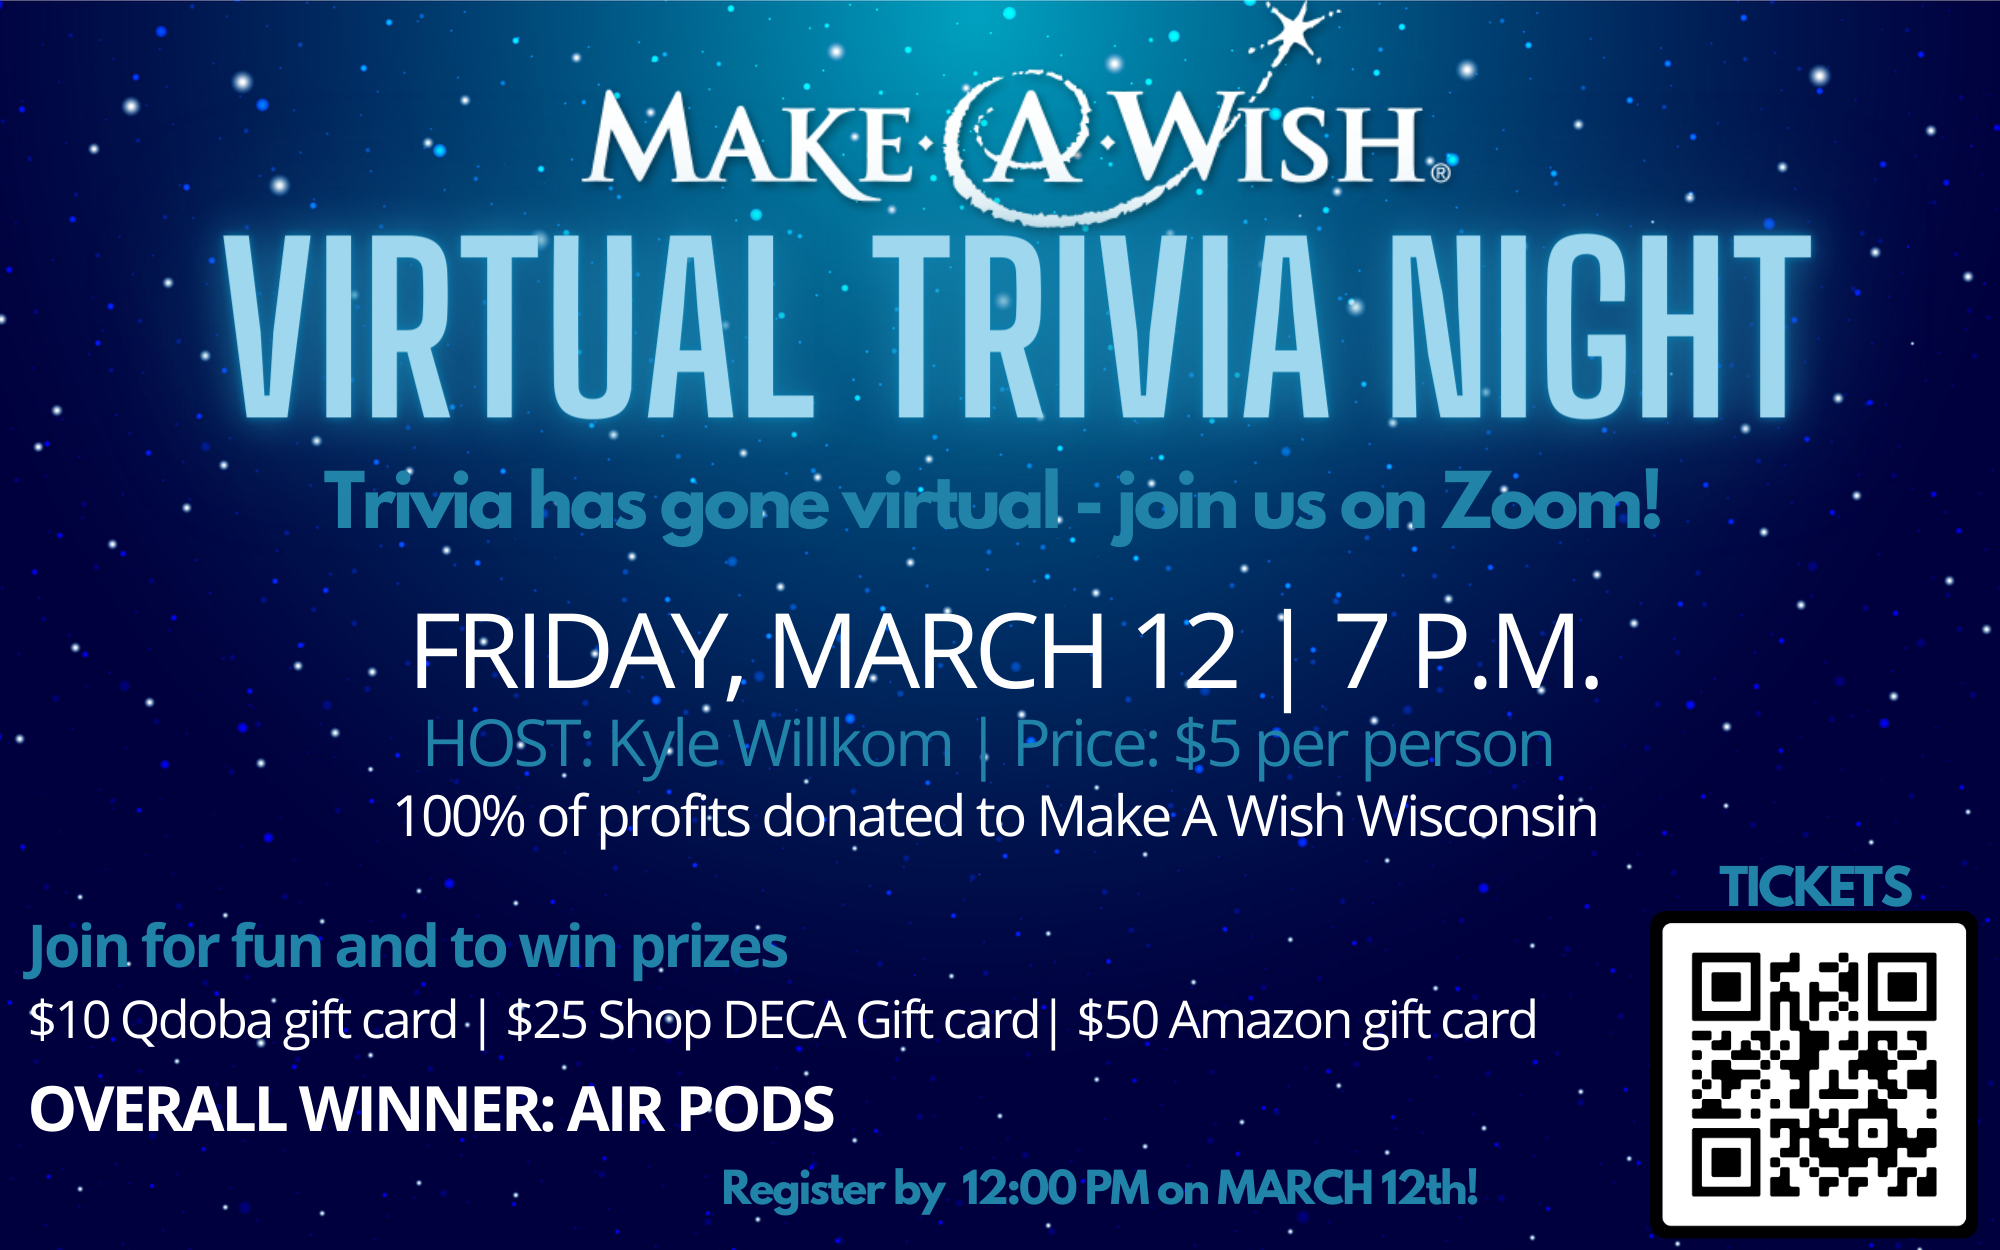 Make A Wish Trivia Night promo graphic